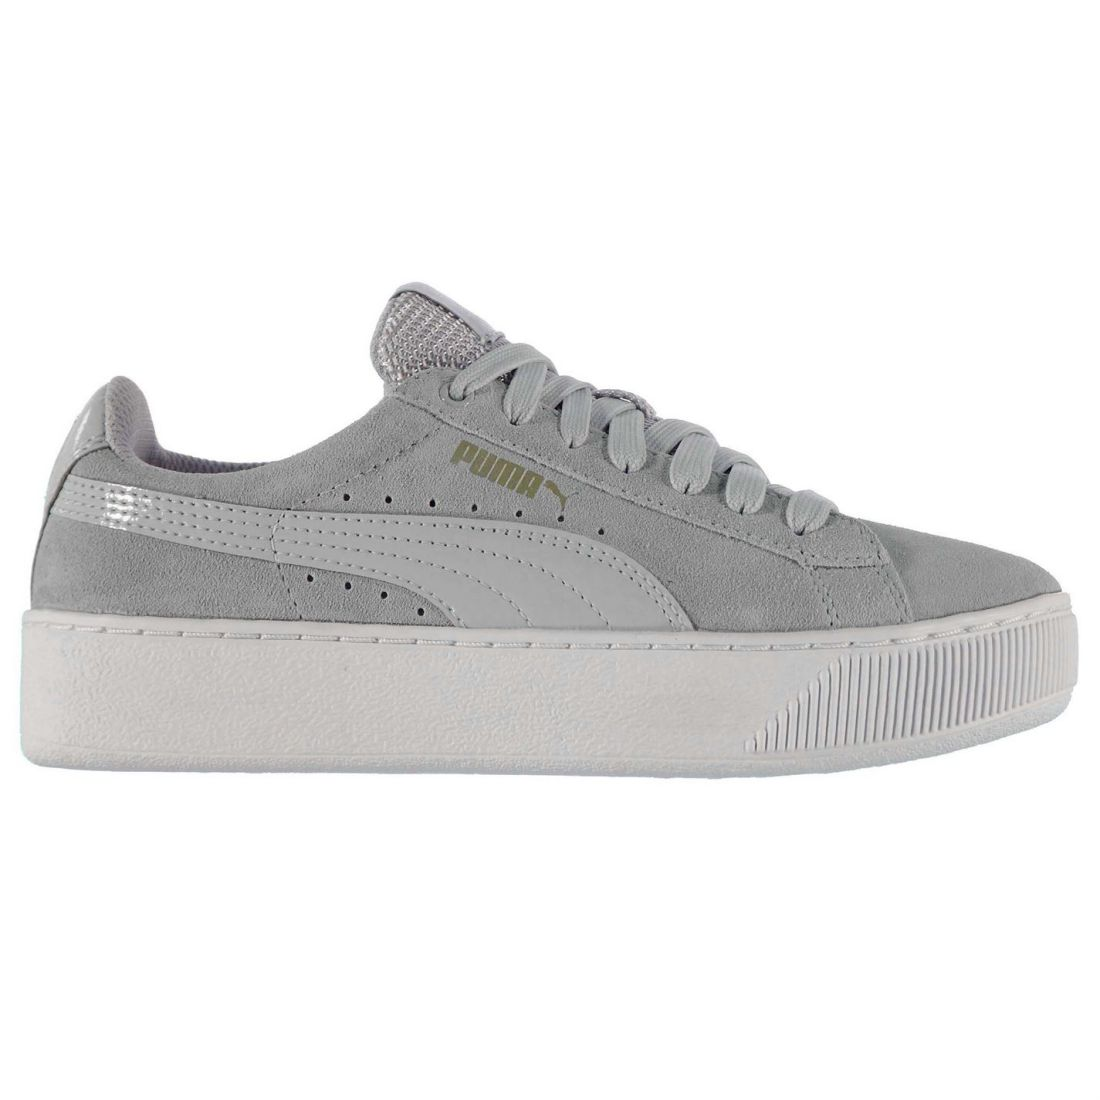 Image is loading Puma-Ladies-Vikky-Platform-Trainers-Shoes-Laces-Fastened- bd16c314f6